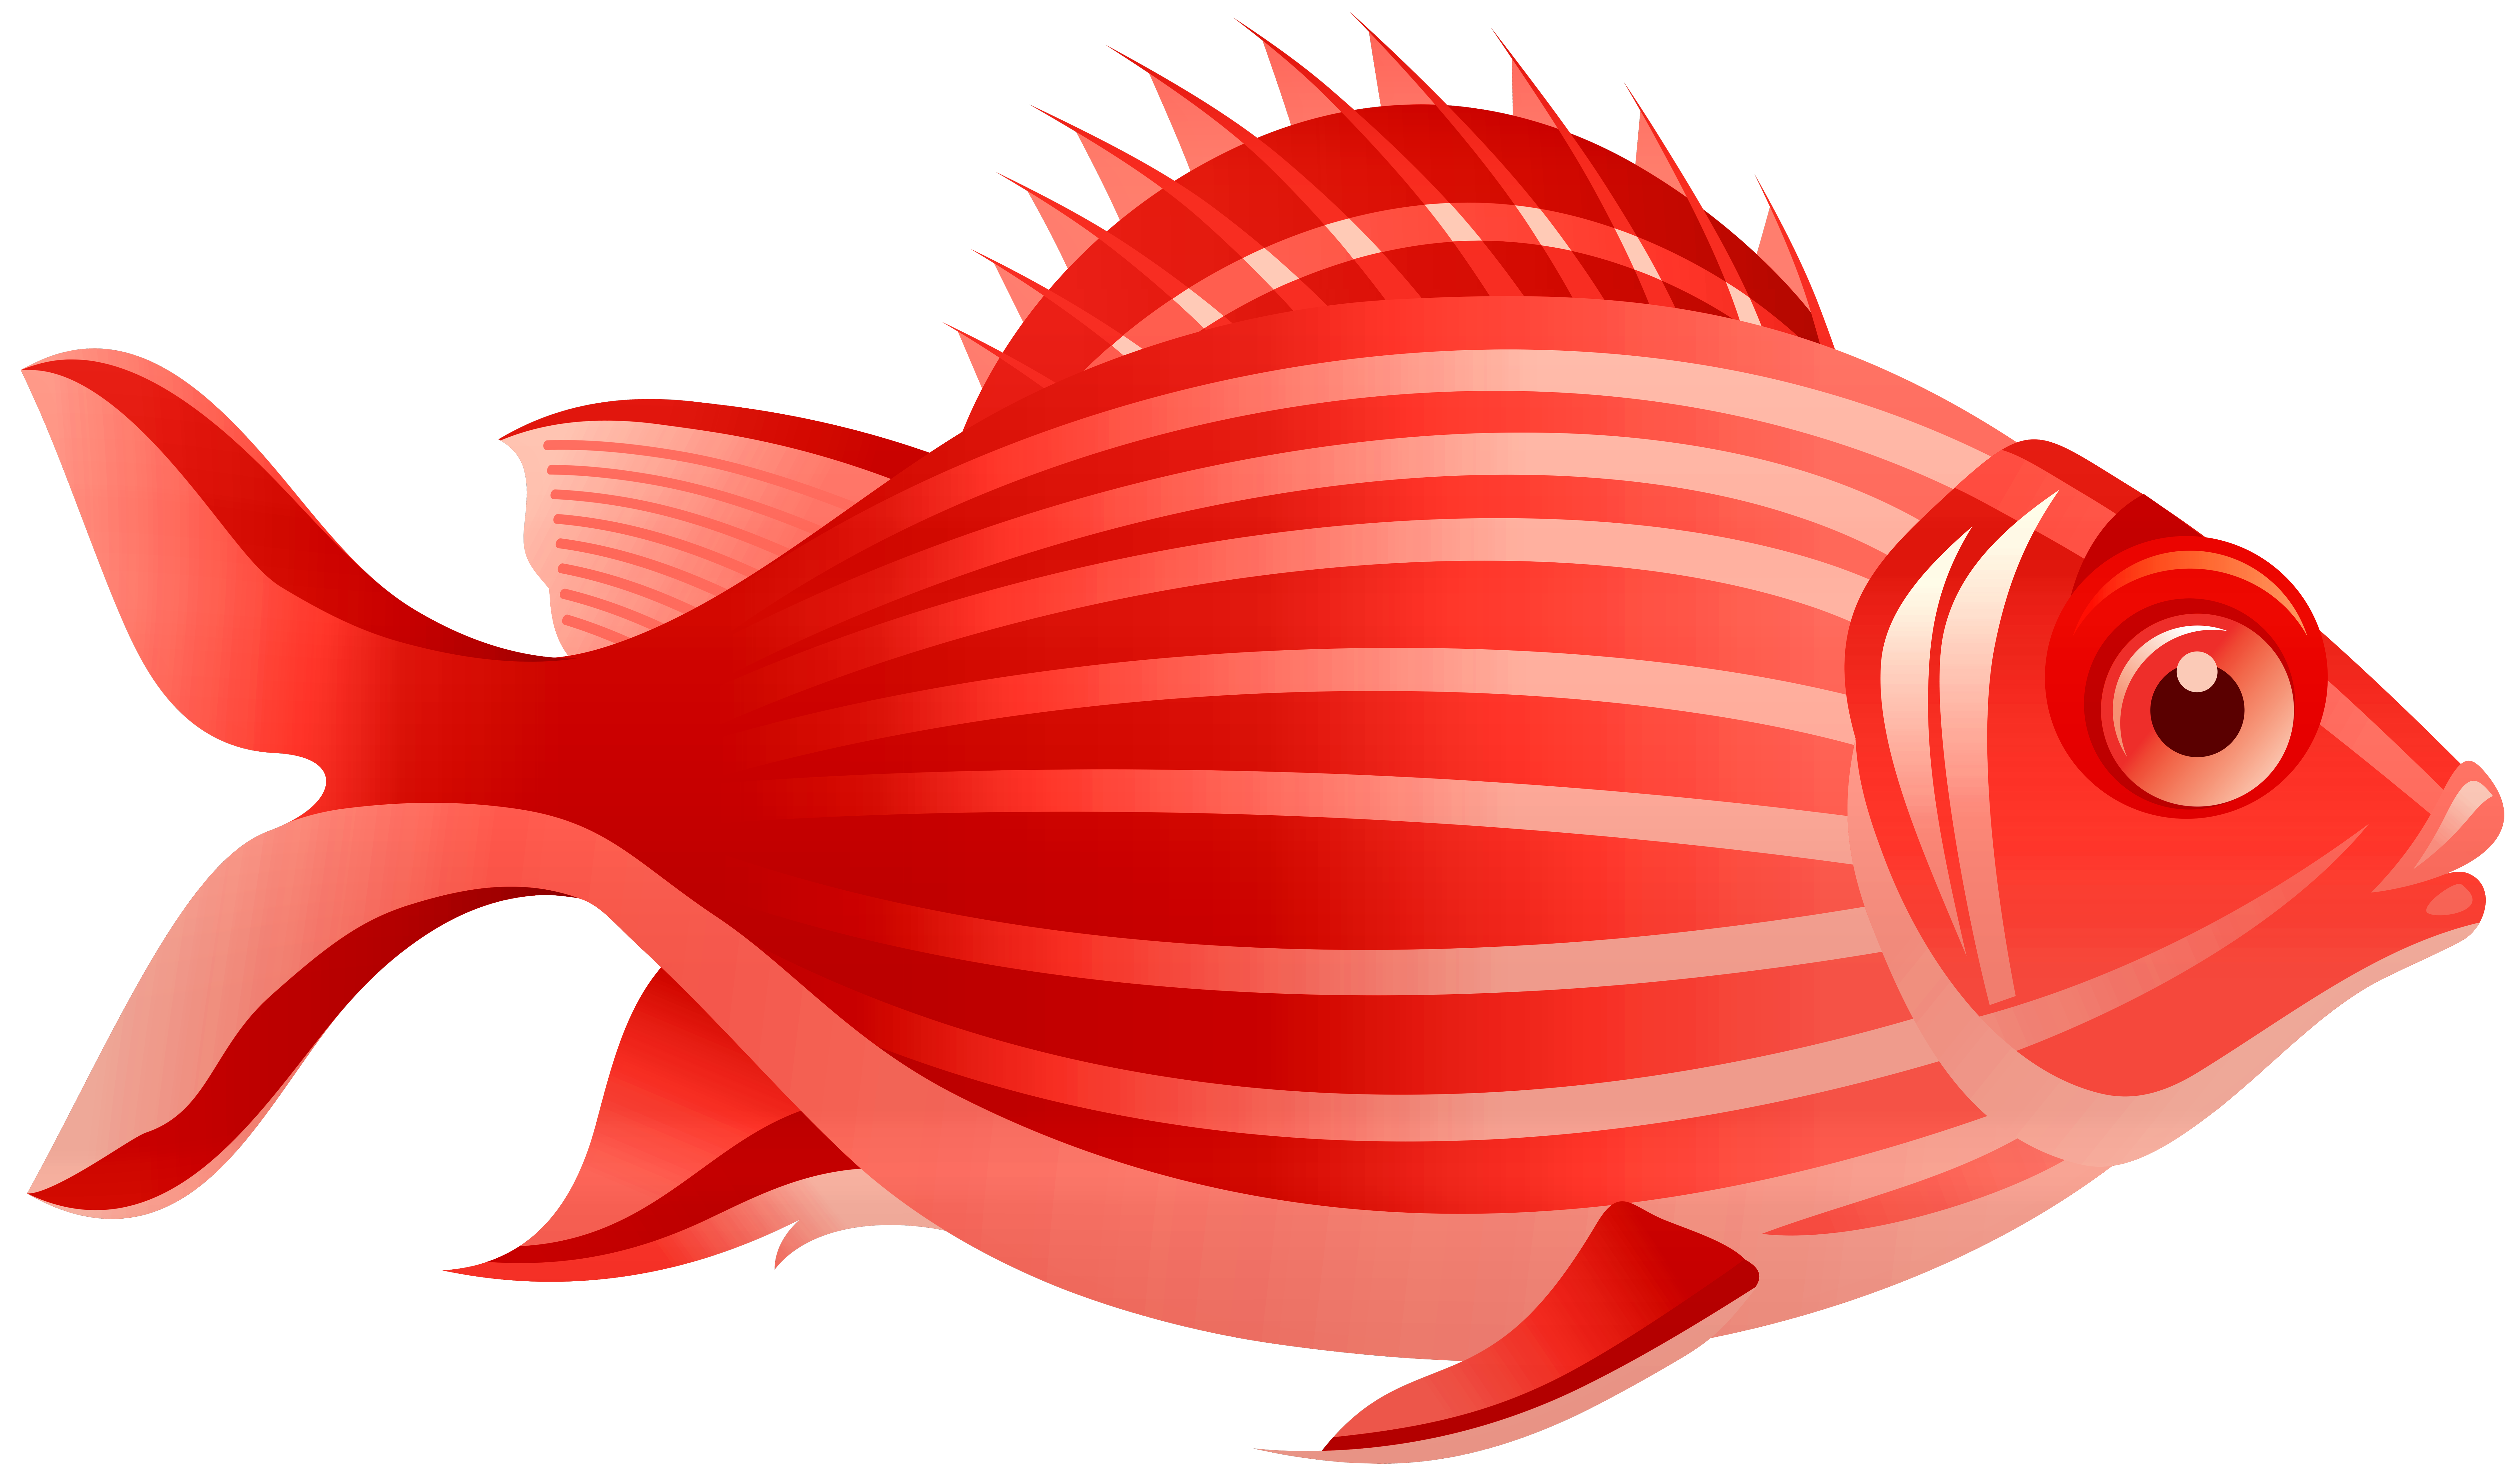 Red fish png. Clip art best web